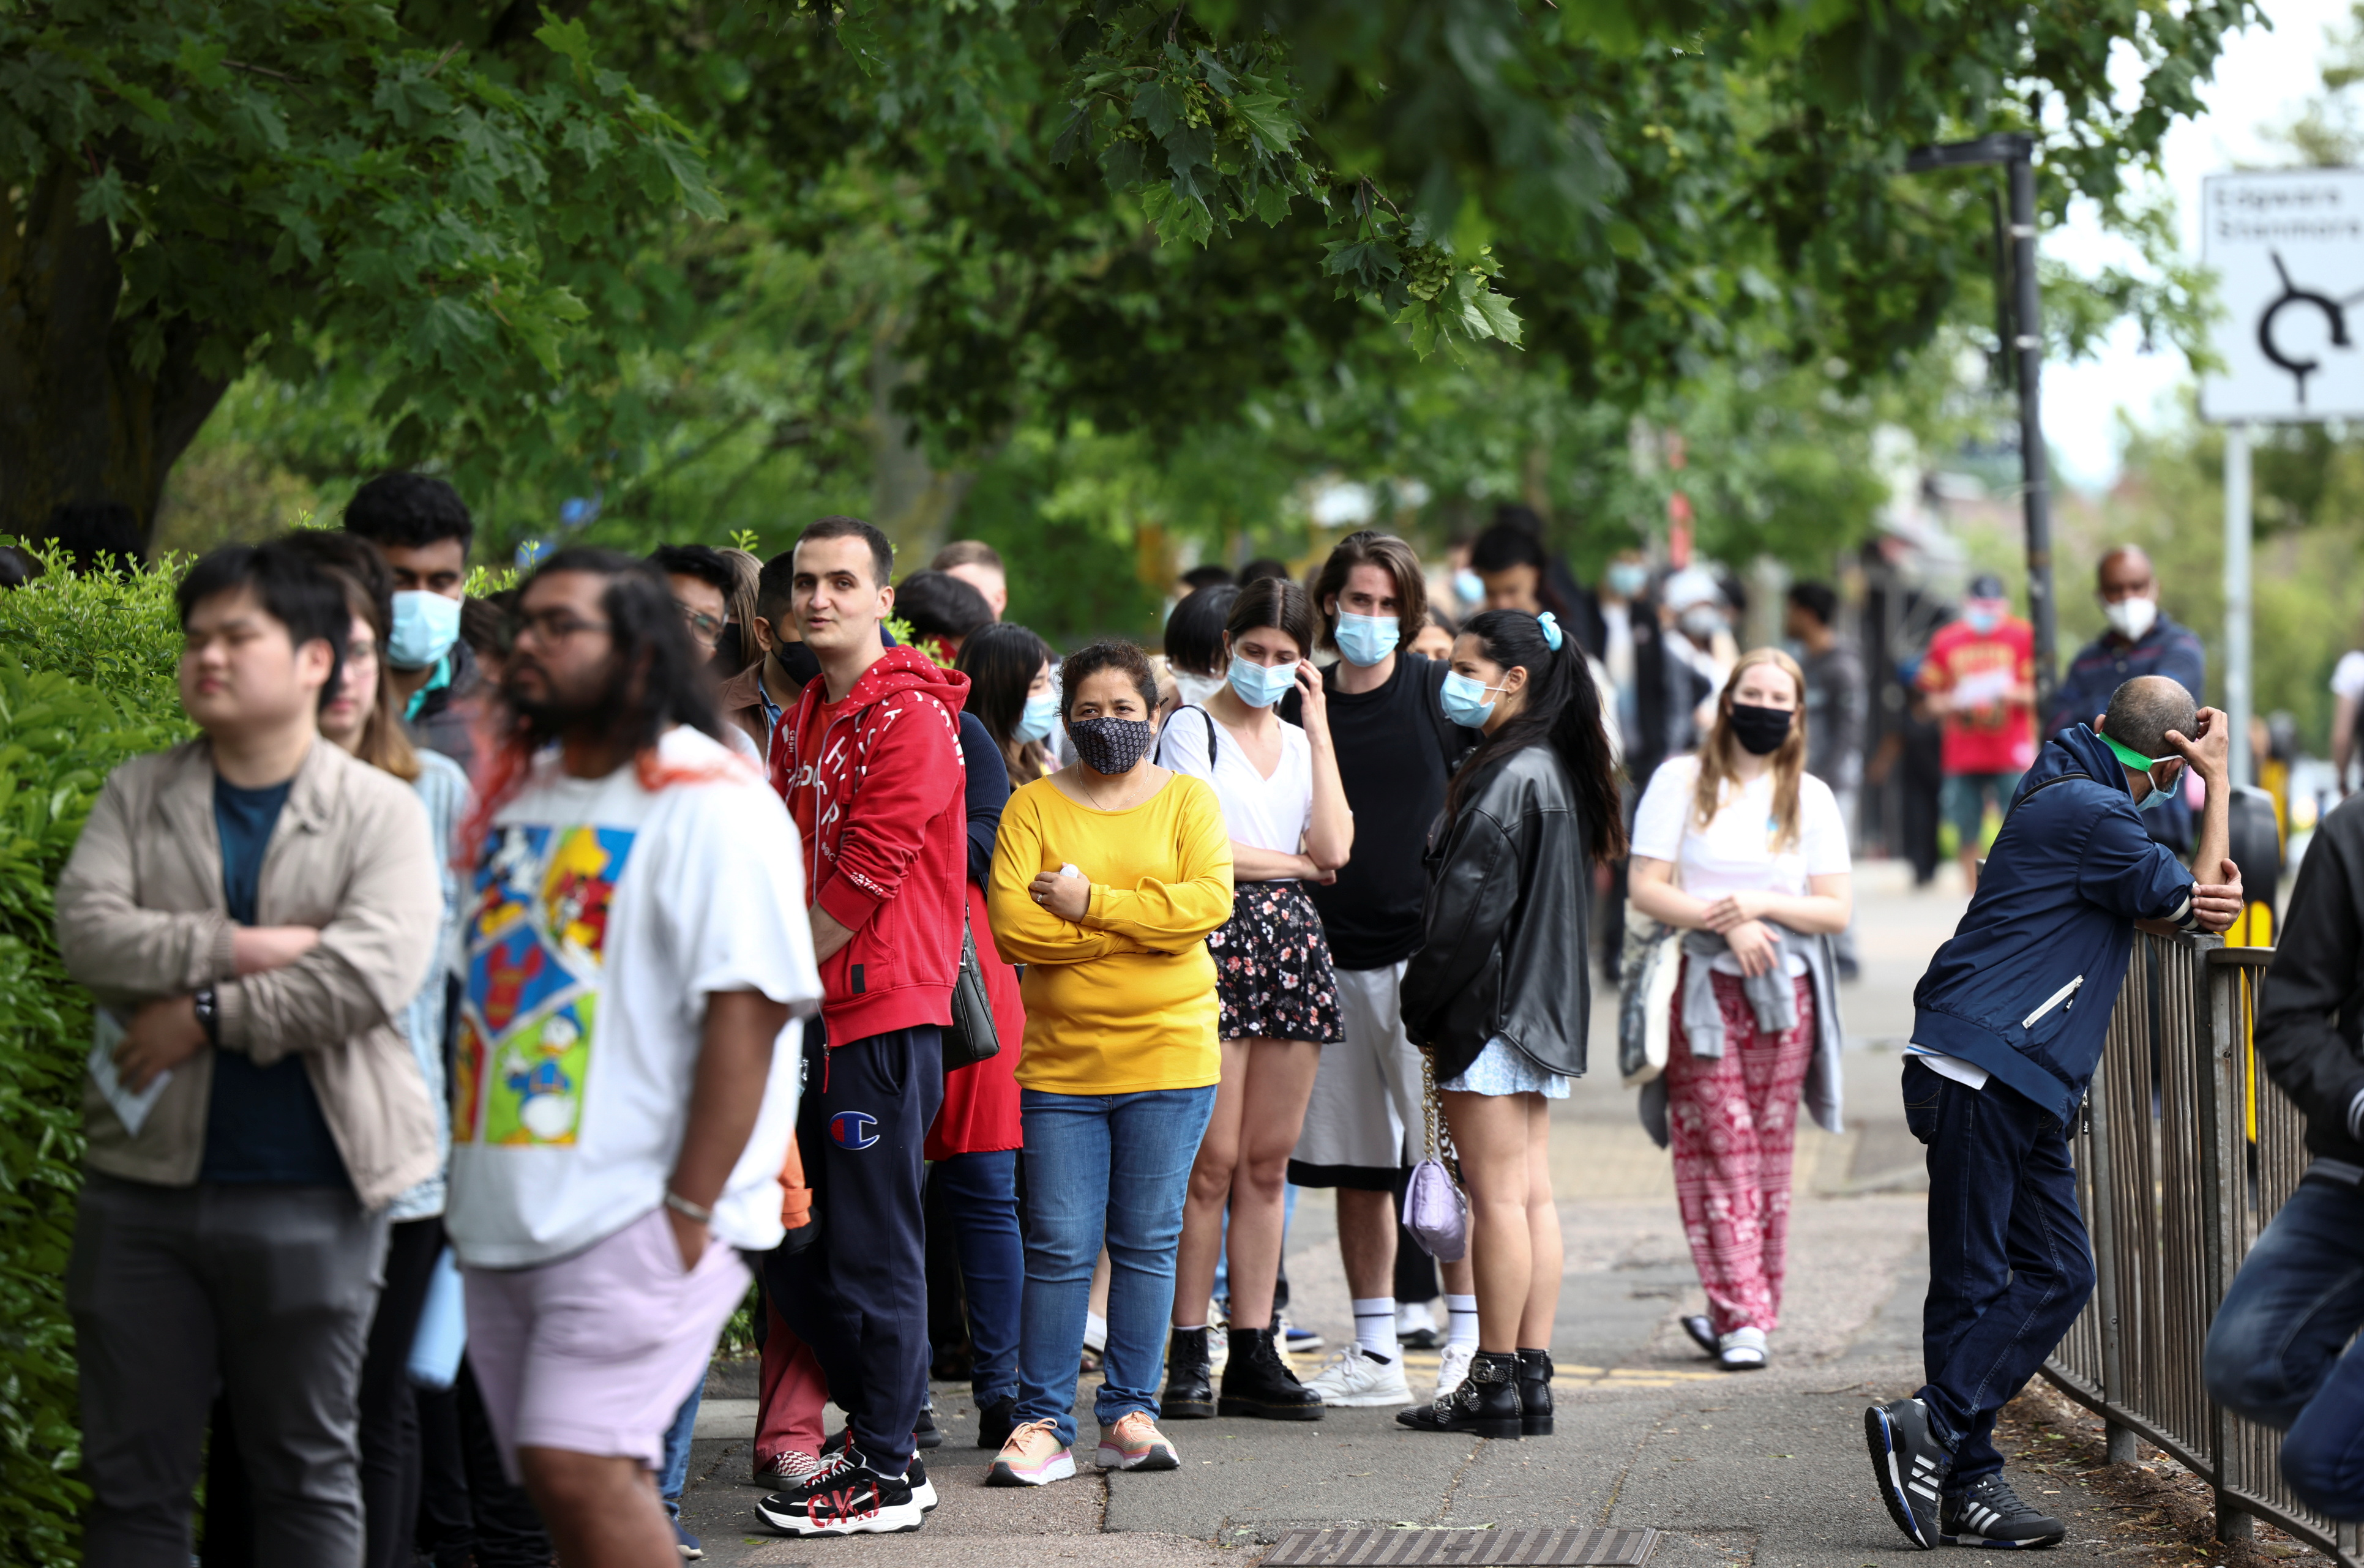 People queue outside a vaccination centre for those aged over 18 years old at the Belmont Health Centre in Harrow, amid the coronavirus disease (COVID-19) outbreak, in London, Britain, June 6, 2021. REUTERS/Henry Nicholls